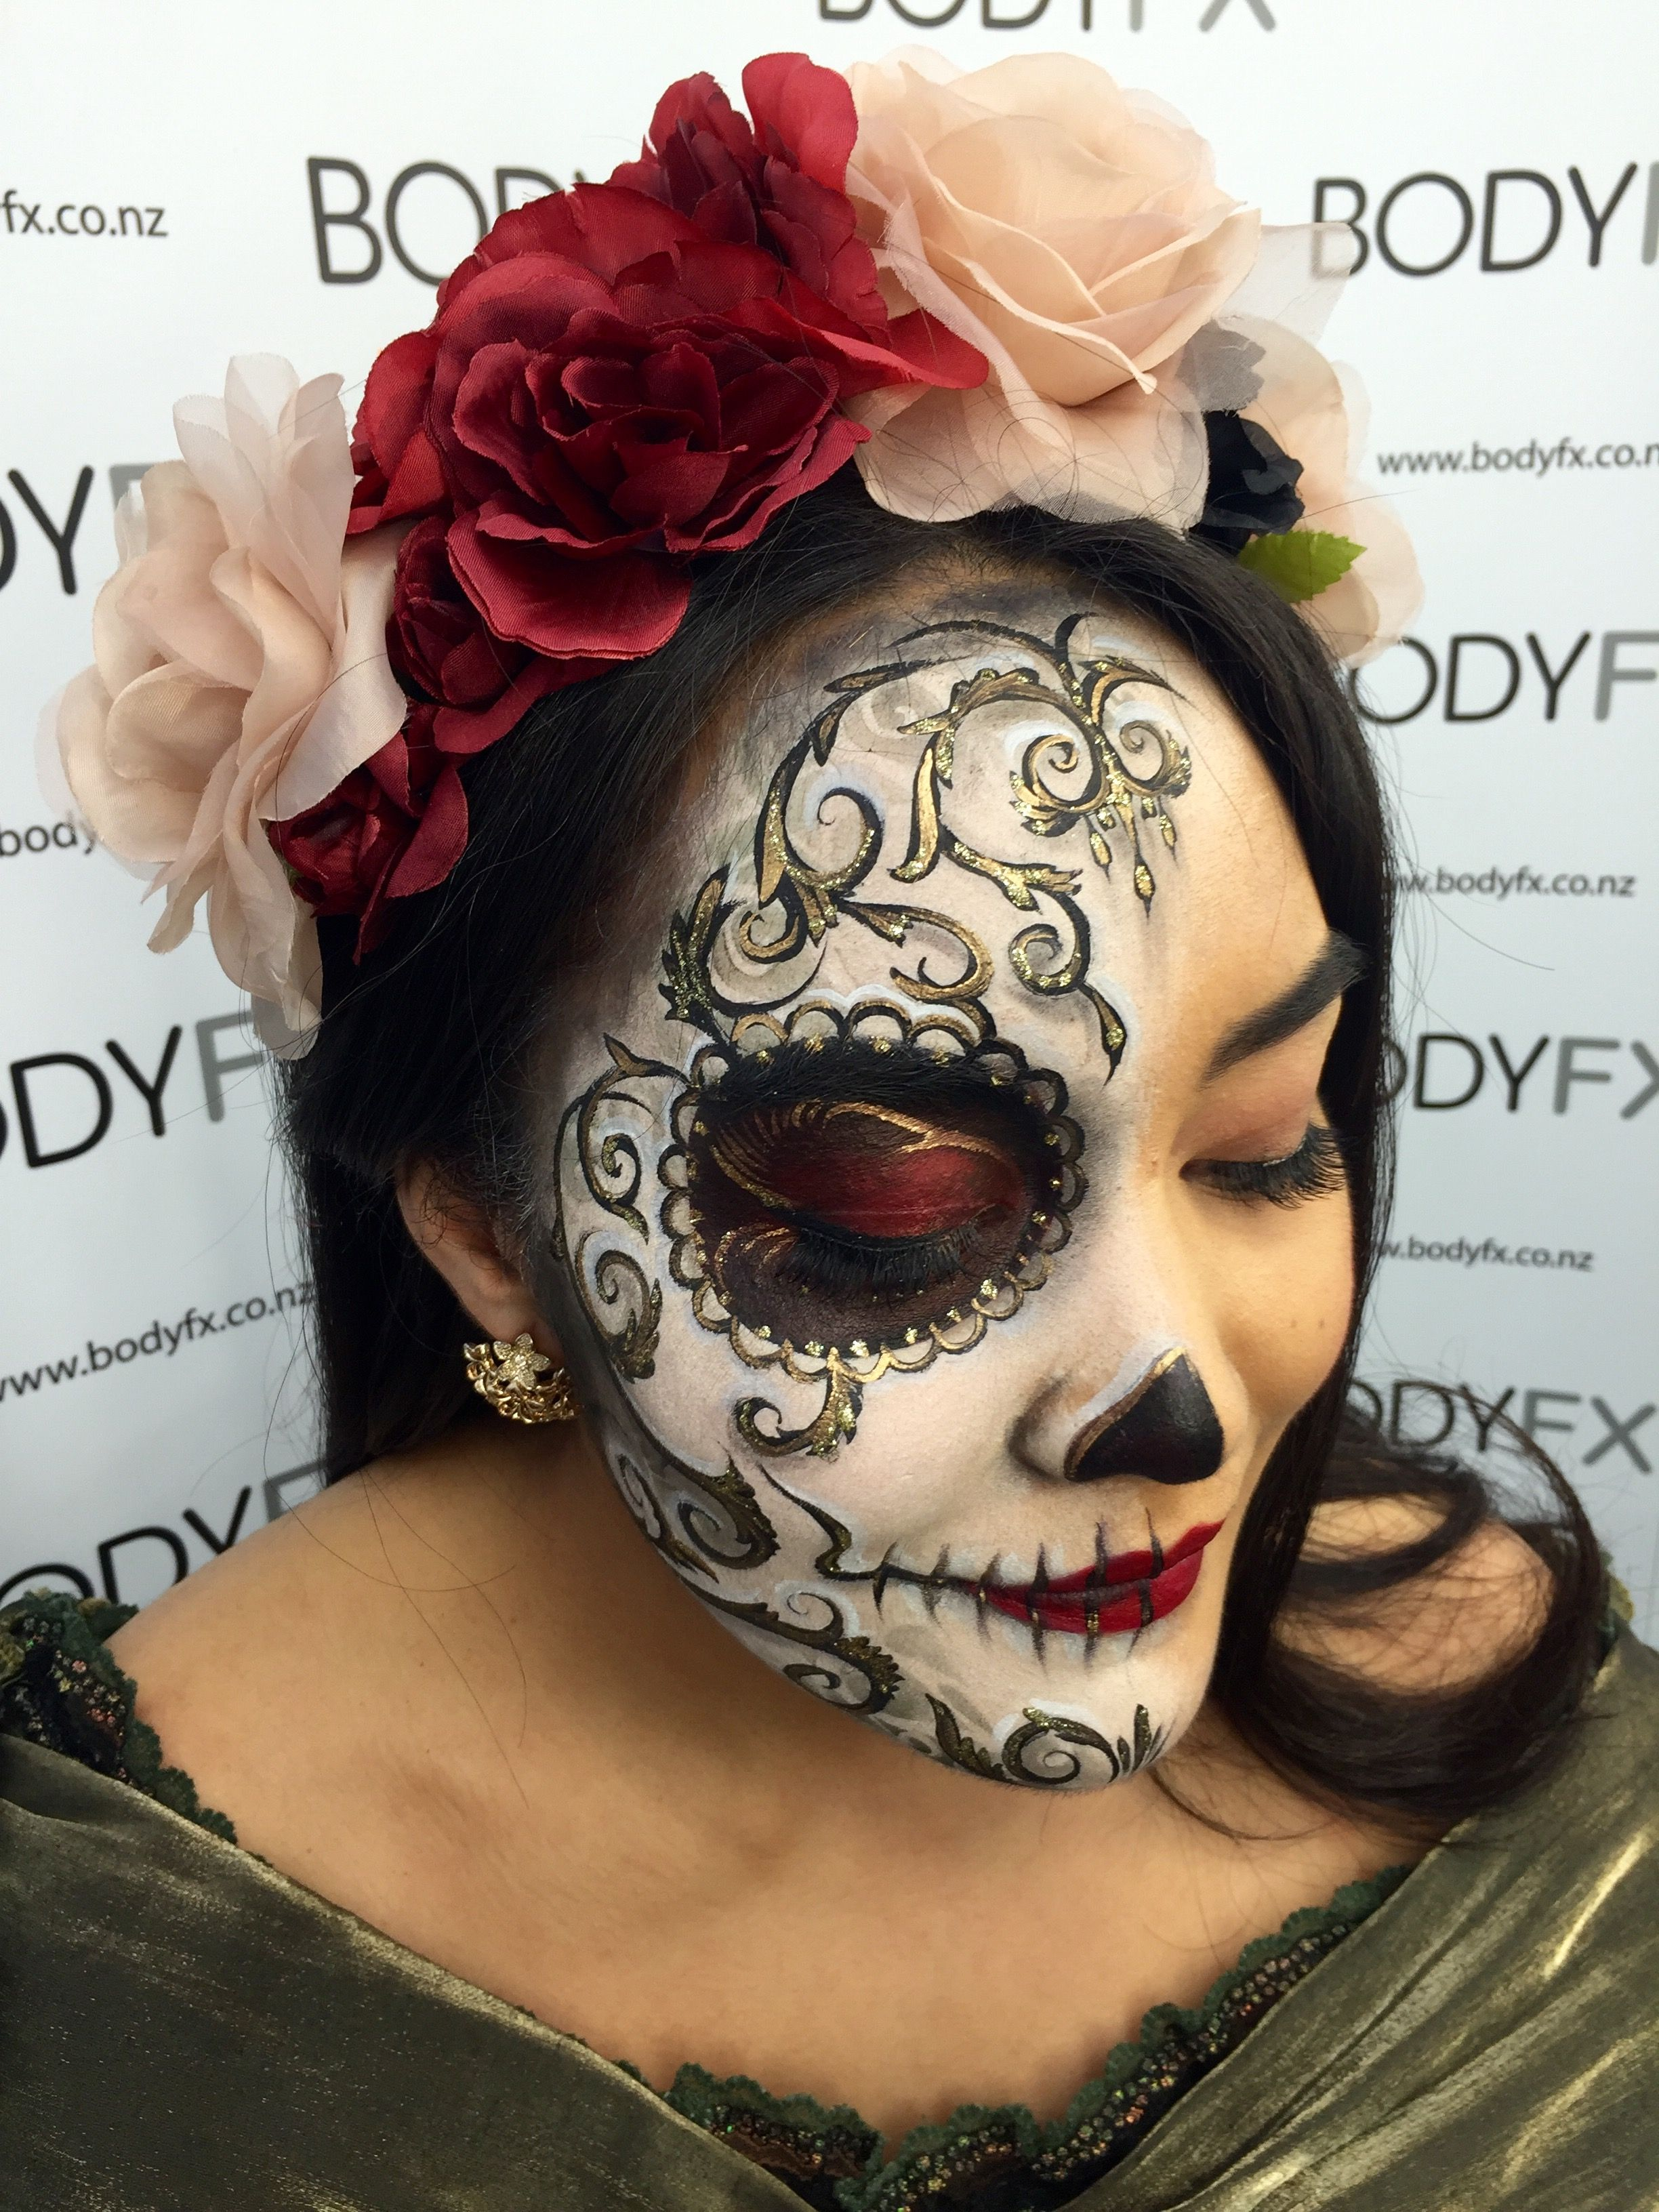 Makeup done by SFX MUAs, working at BODYFX NEW ZEALAND. in